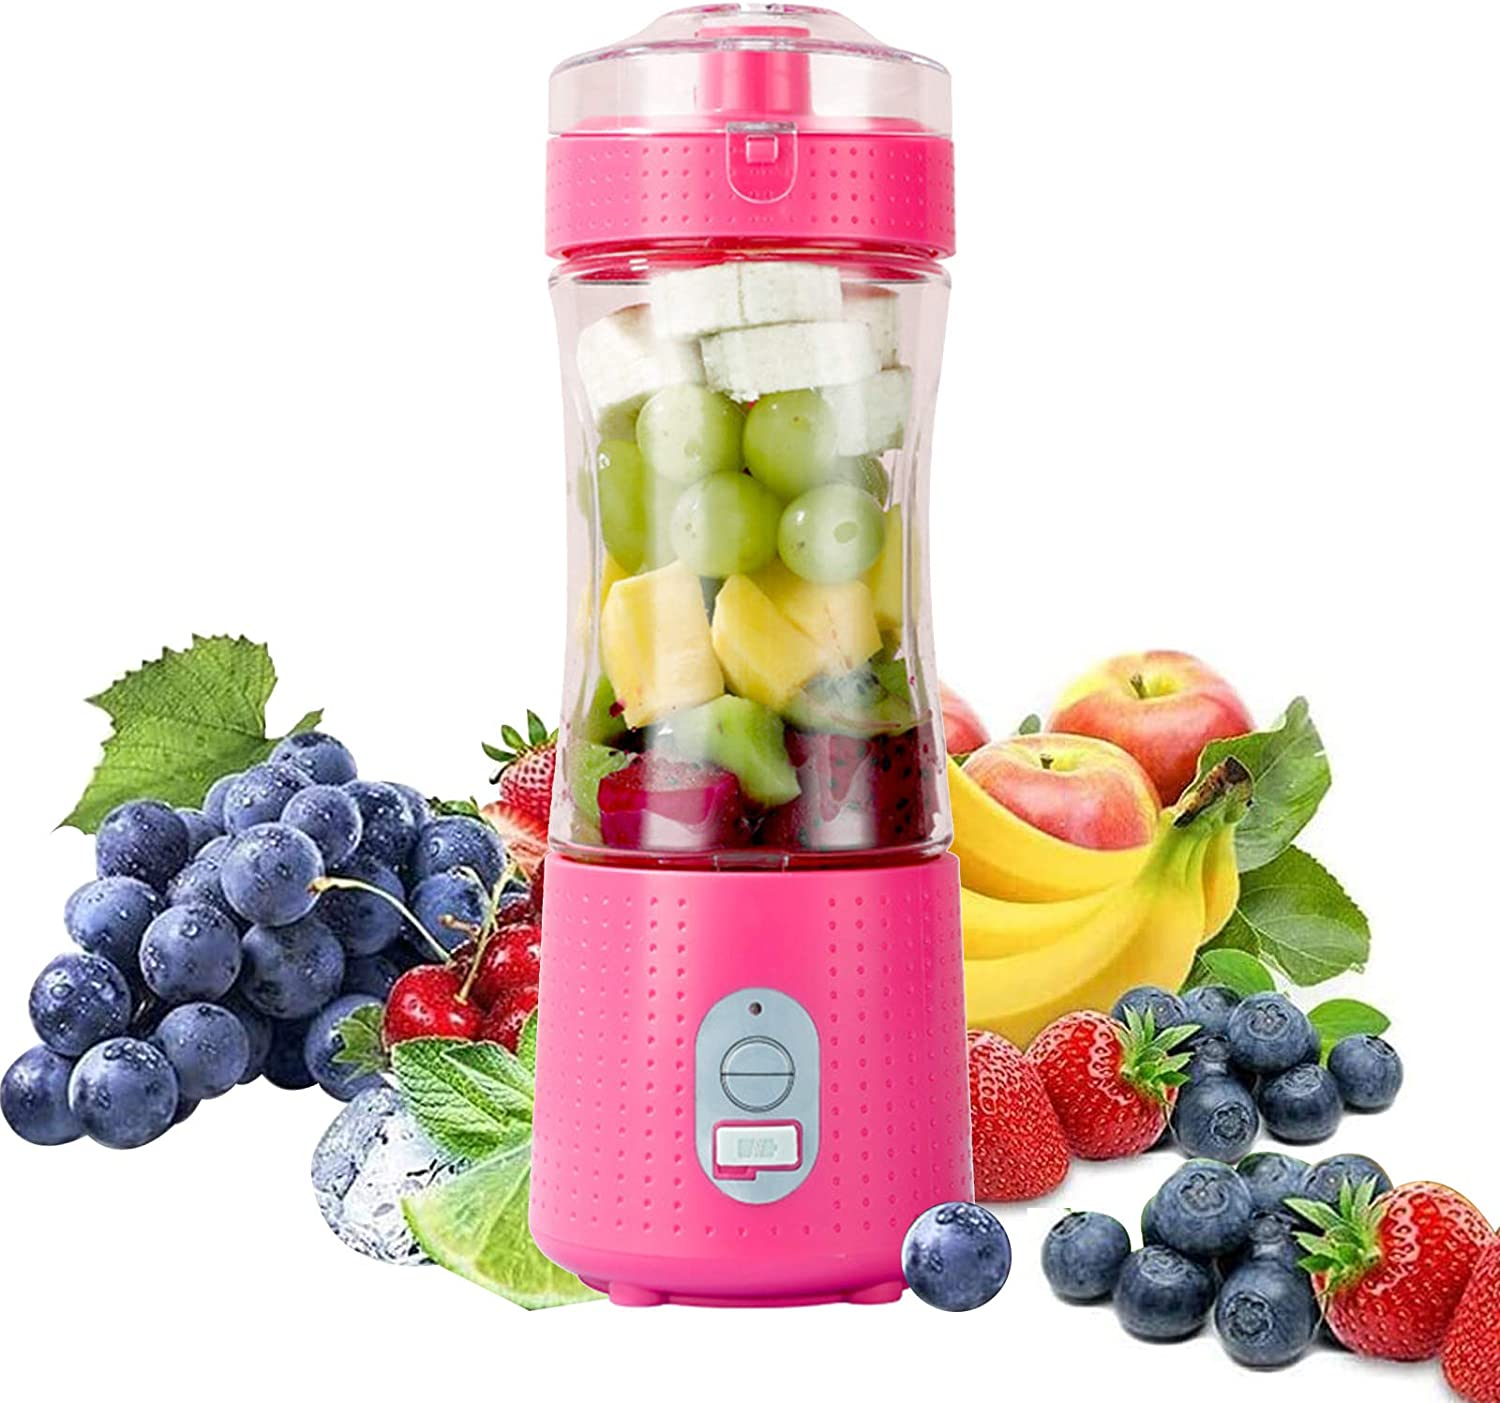 Rechargeable Personal Max 52% OFF Blender Small Juice Smoothie Maker wi Cup Spasm price